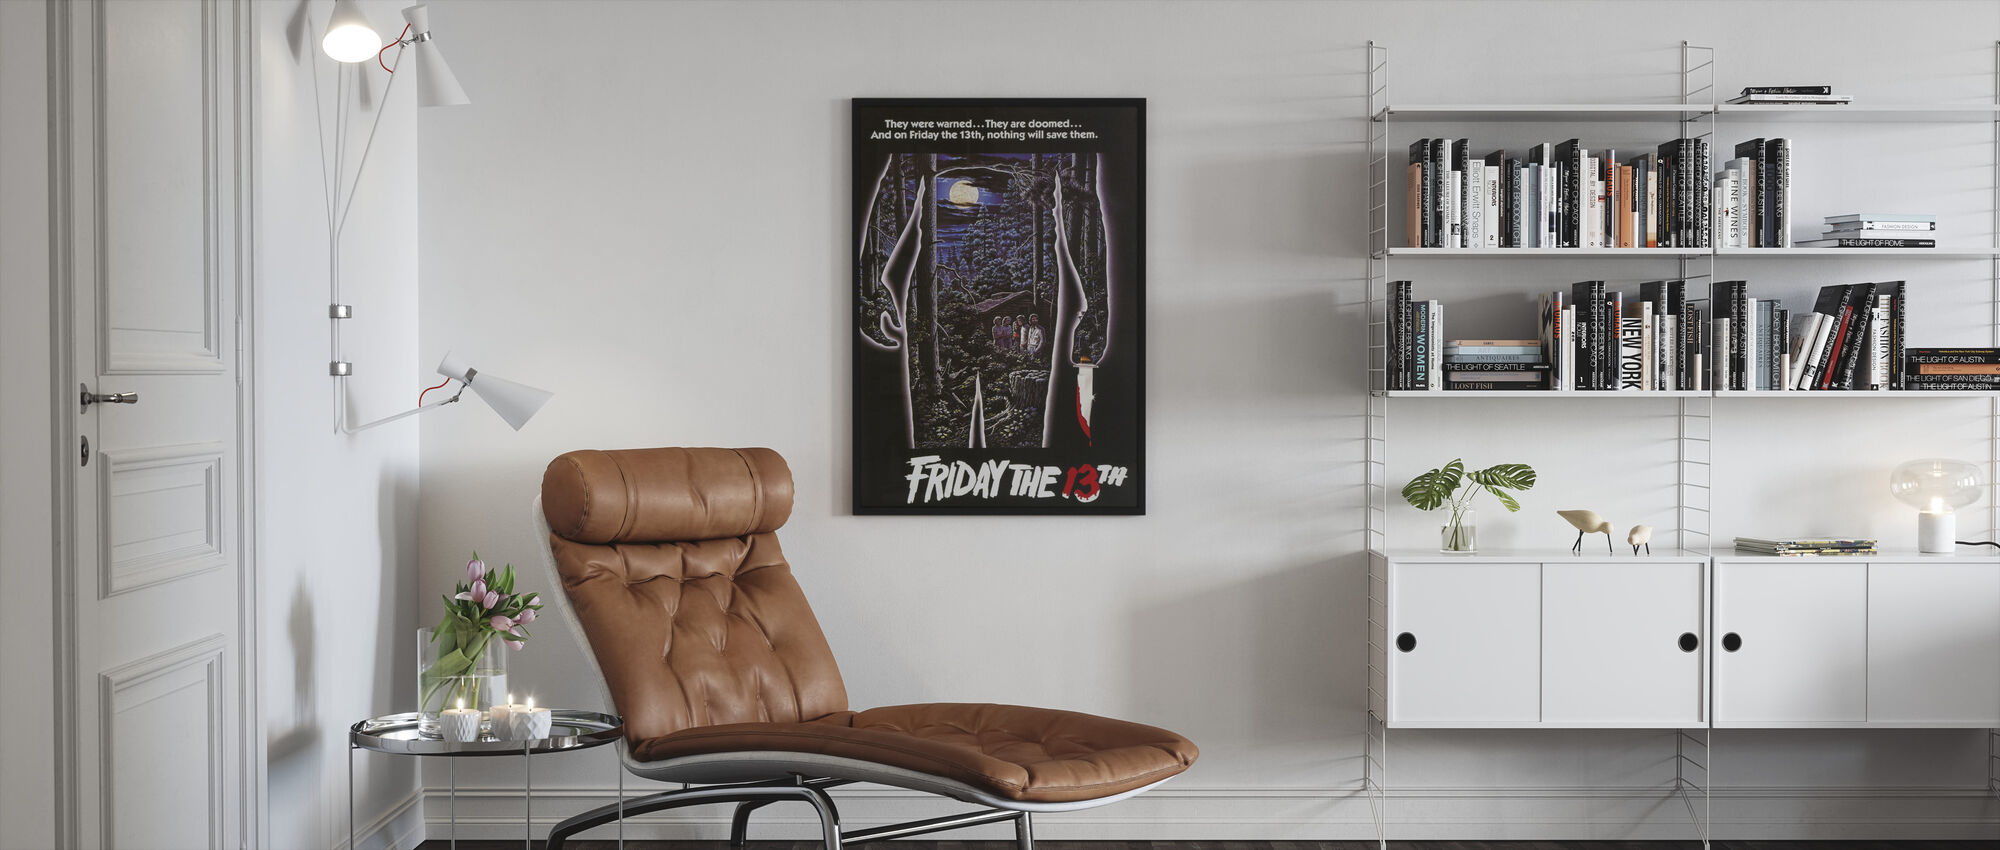 Friday The 13th - Framed print - Living Room